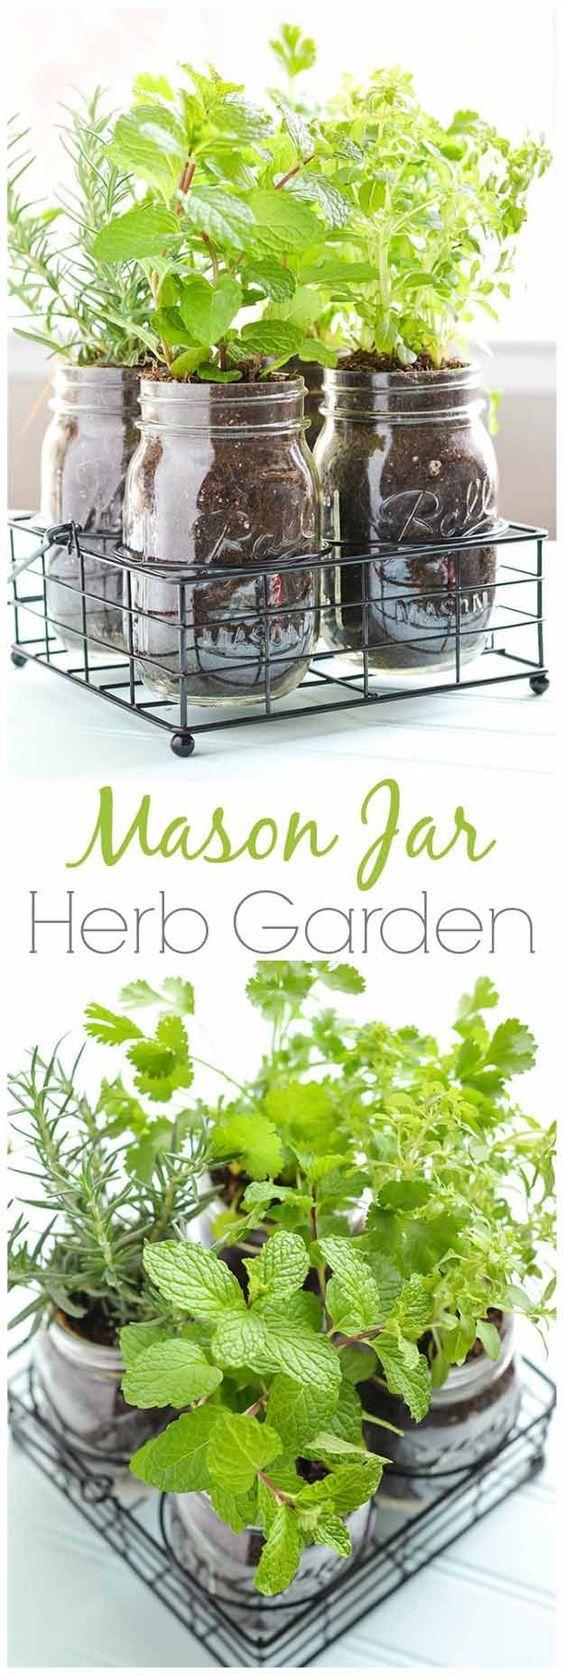 25+ best Easy garden ideas on Pinterest | Growing lettuce, Growing ...